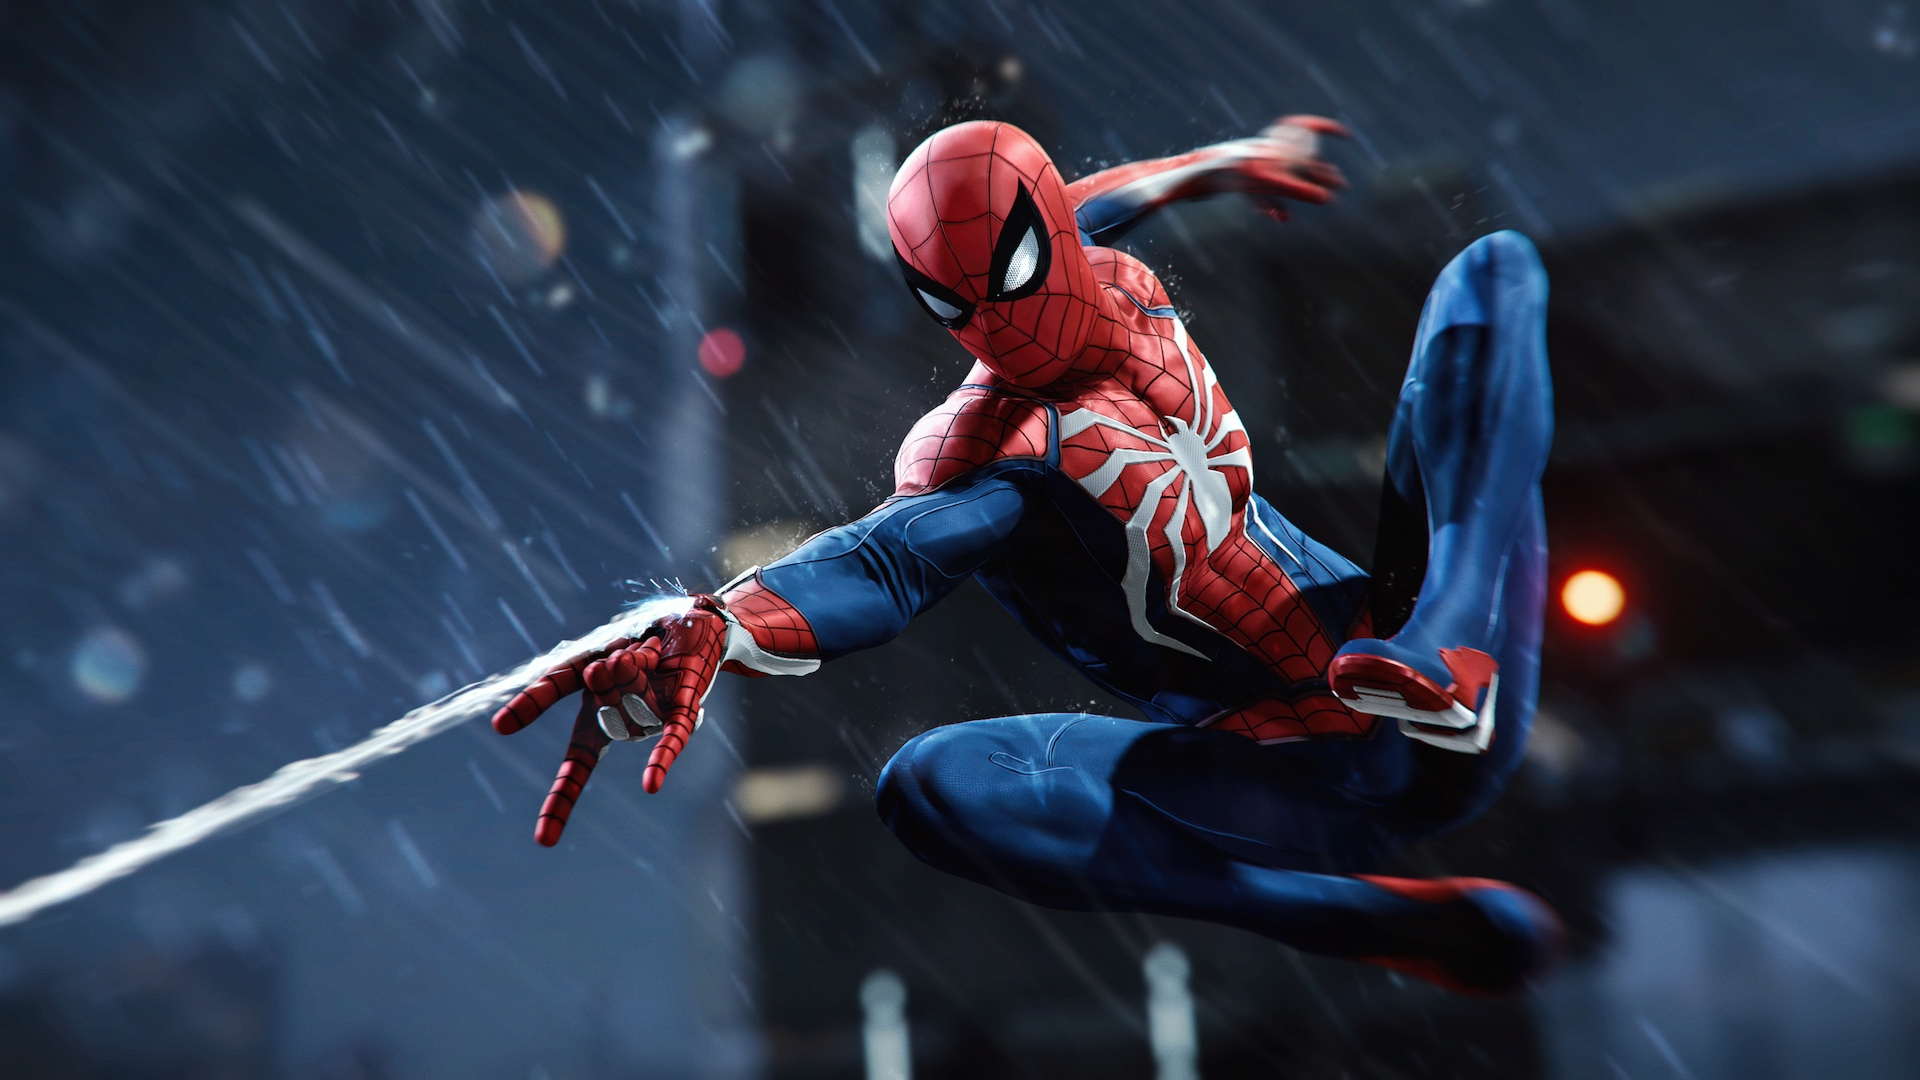 photo image 'Spider-Man' is my web-slinging dreams come true